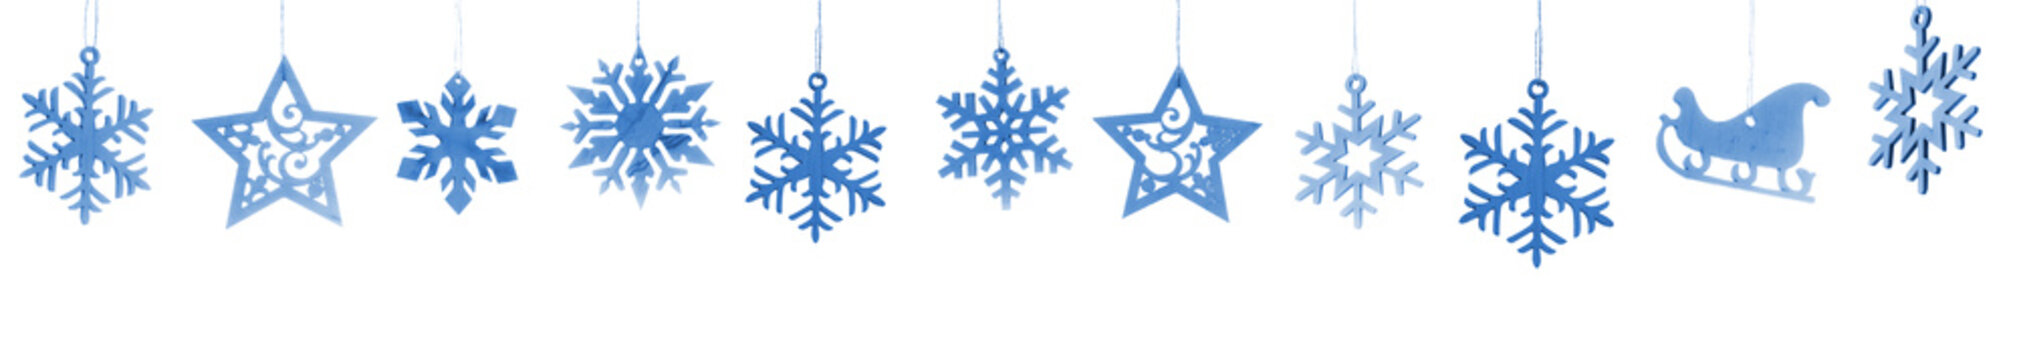 wooden snowflakes and stars  isolated on white background